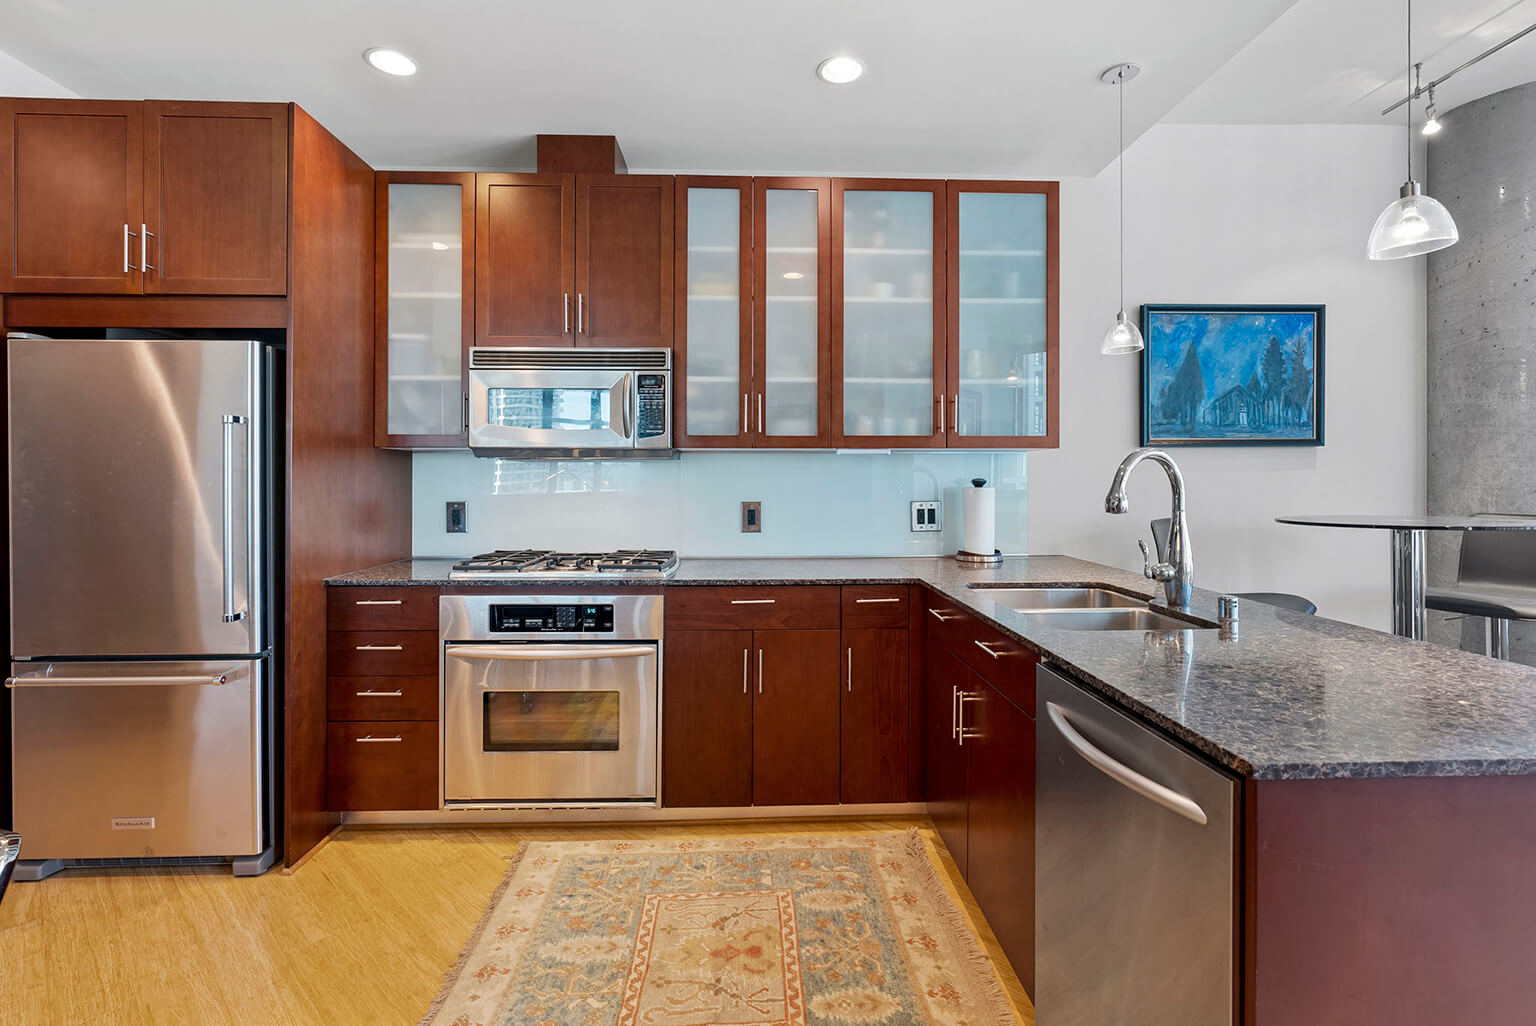 Newer KitchenAid stainless appliances including a gas range